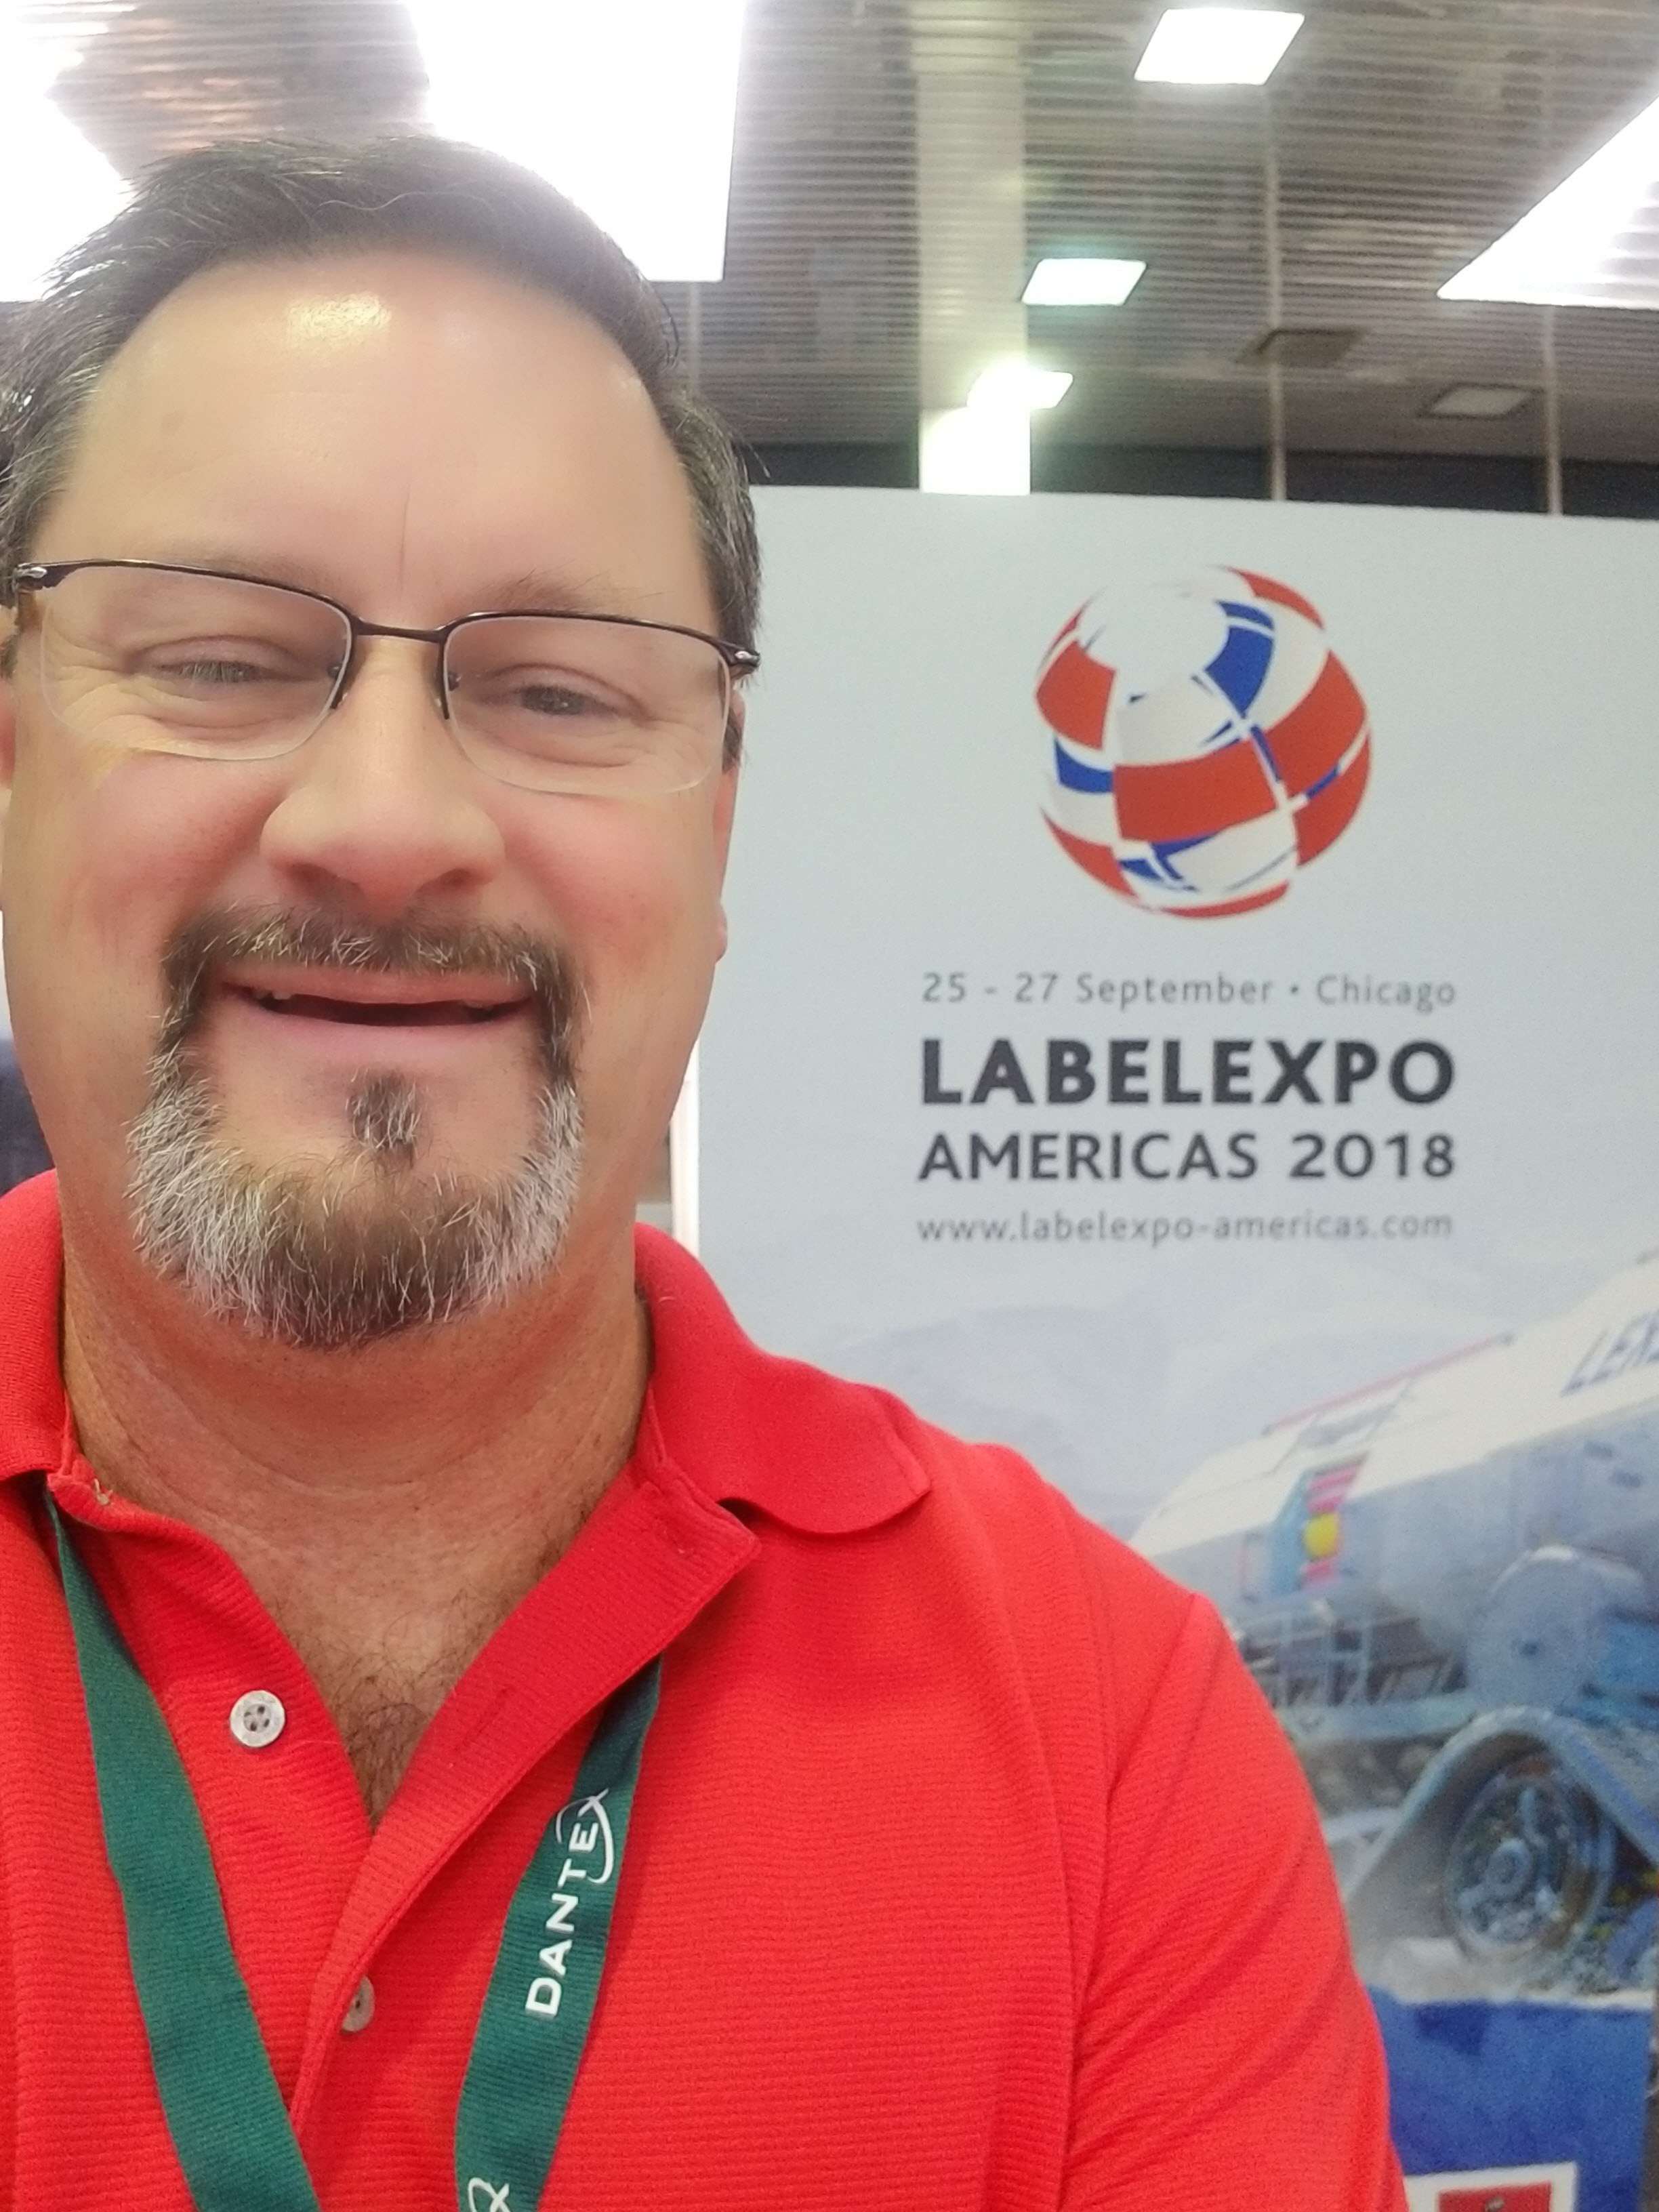 Ken Ballard at Label Expo Americas 2018.